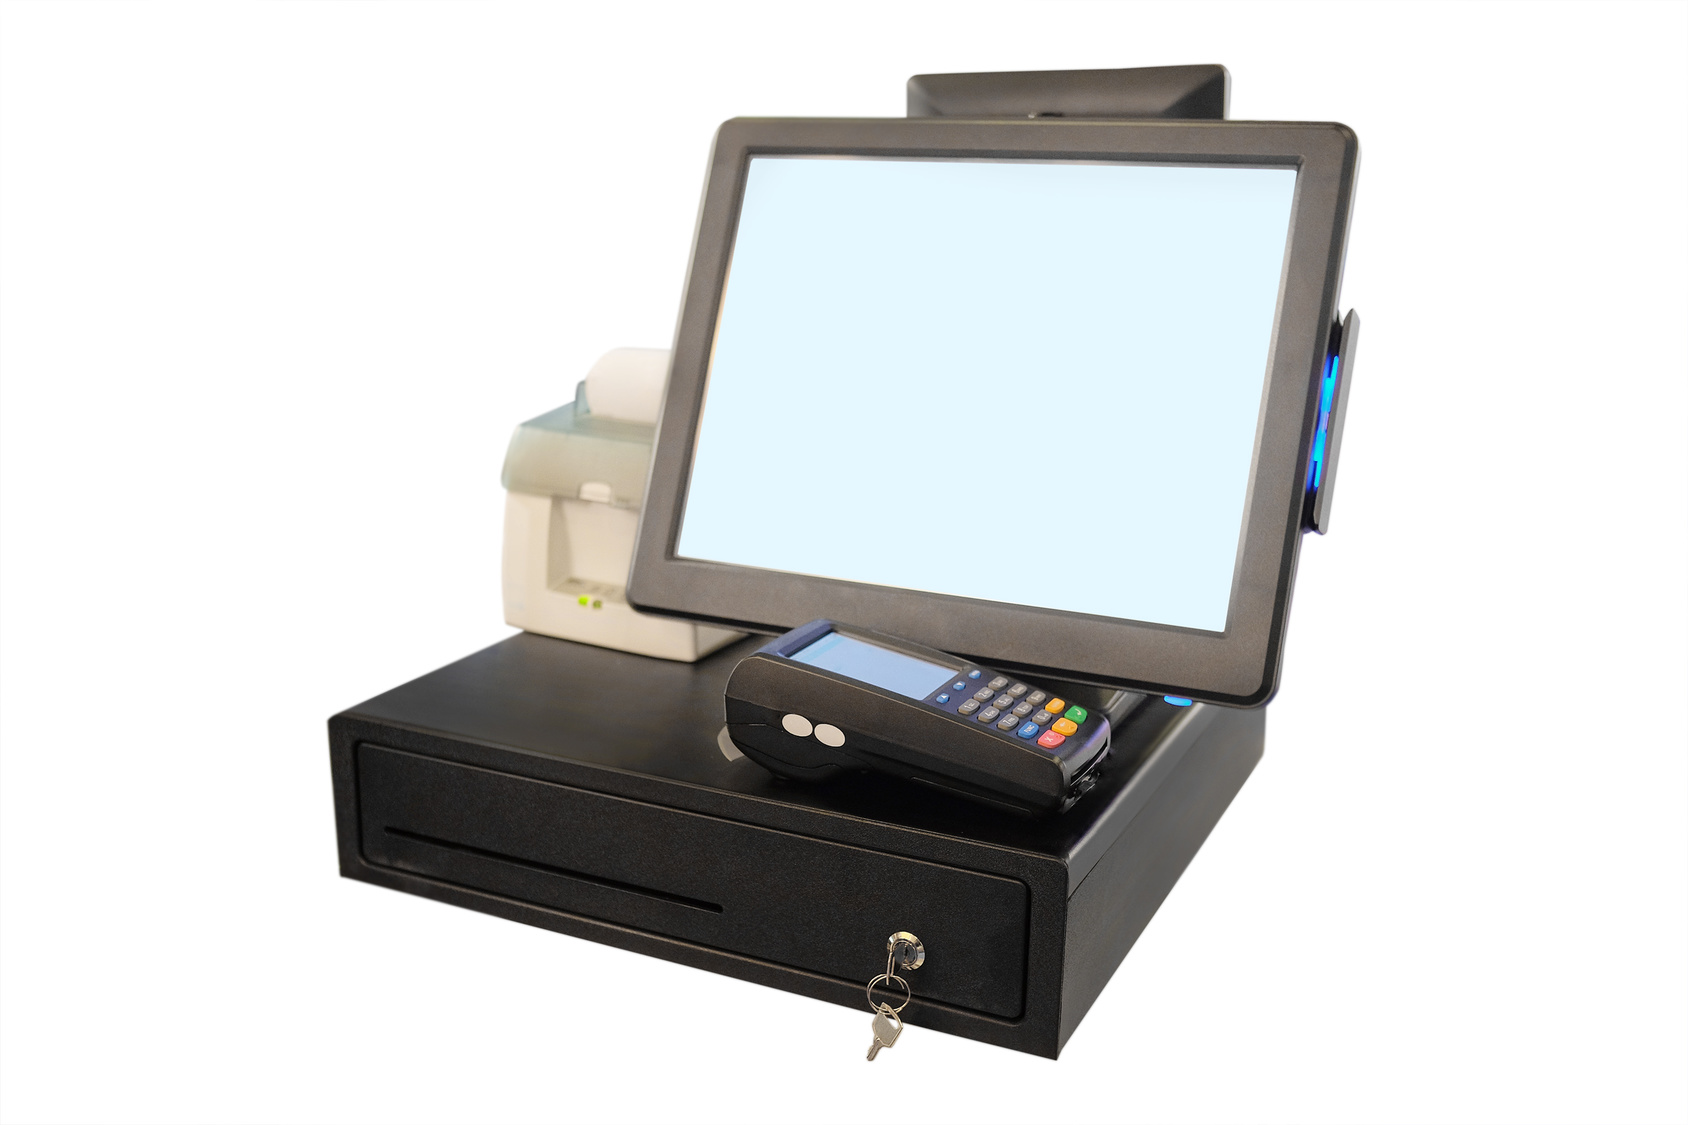 Epos Depo for all your POS Equipment and EPOS Equipment